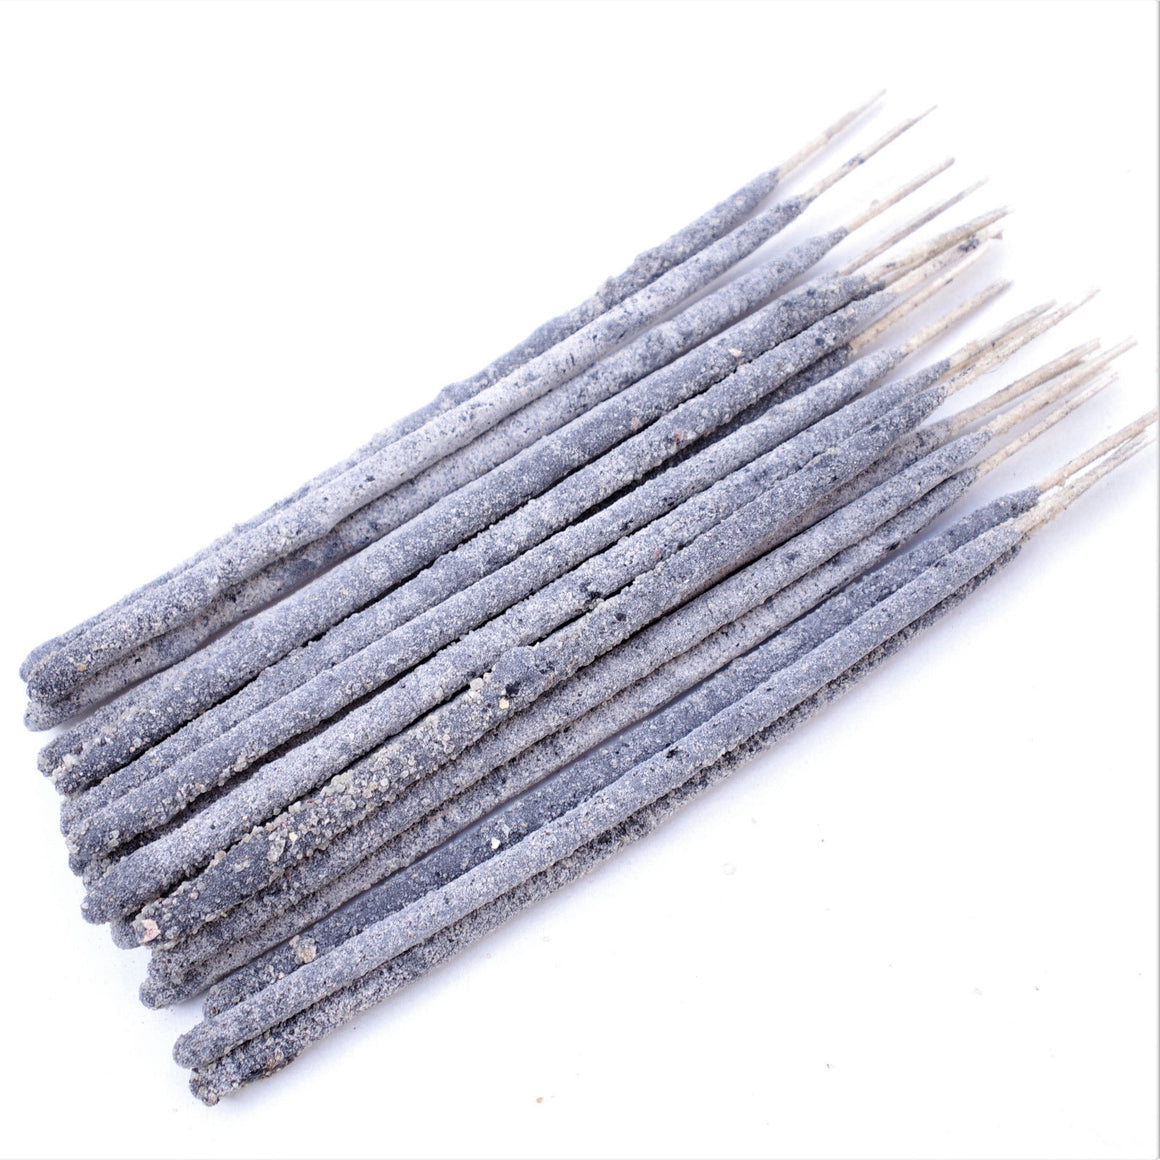 New Shorties 20 Sticks Deluxe Mayan White Copal Resin Incense Chiapas Mexico